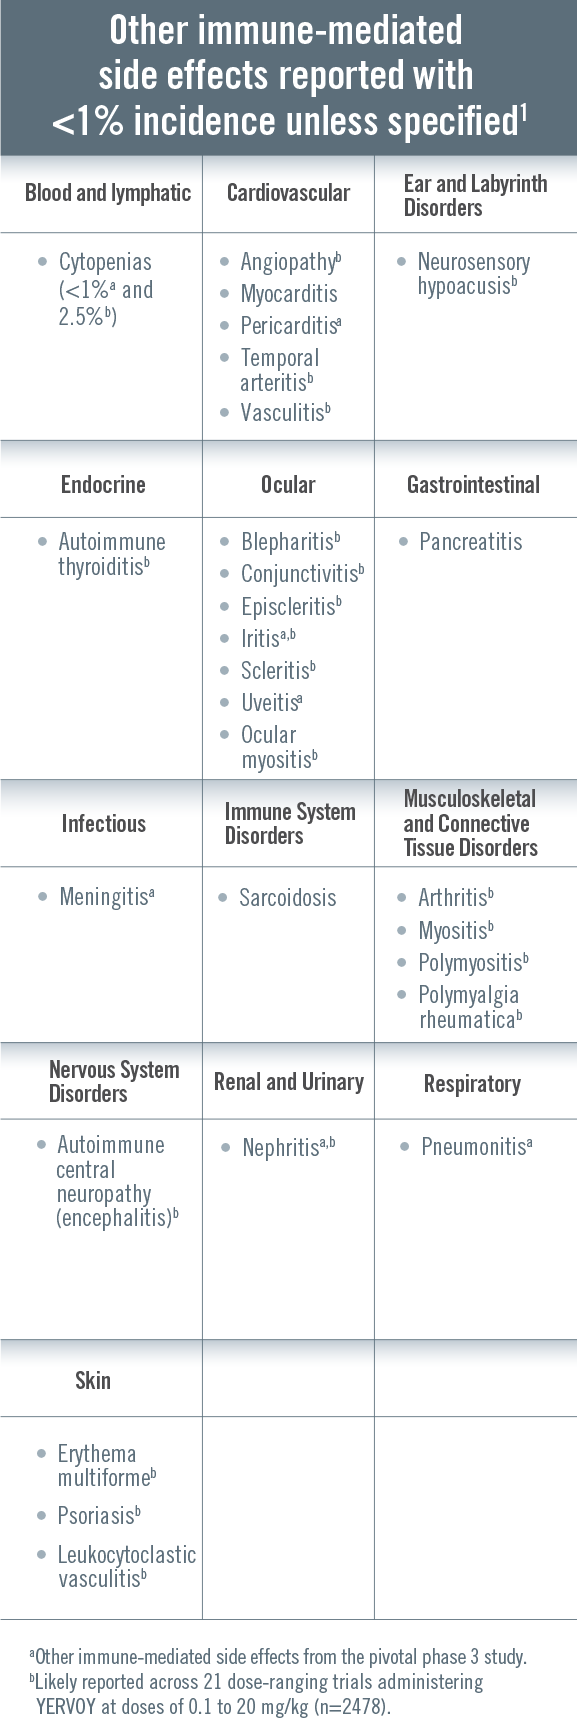 Immune-Mediated Side Effects | Healthcare Professionals